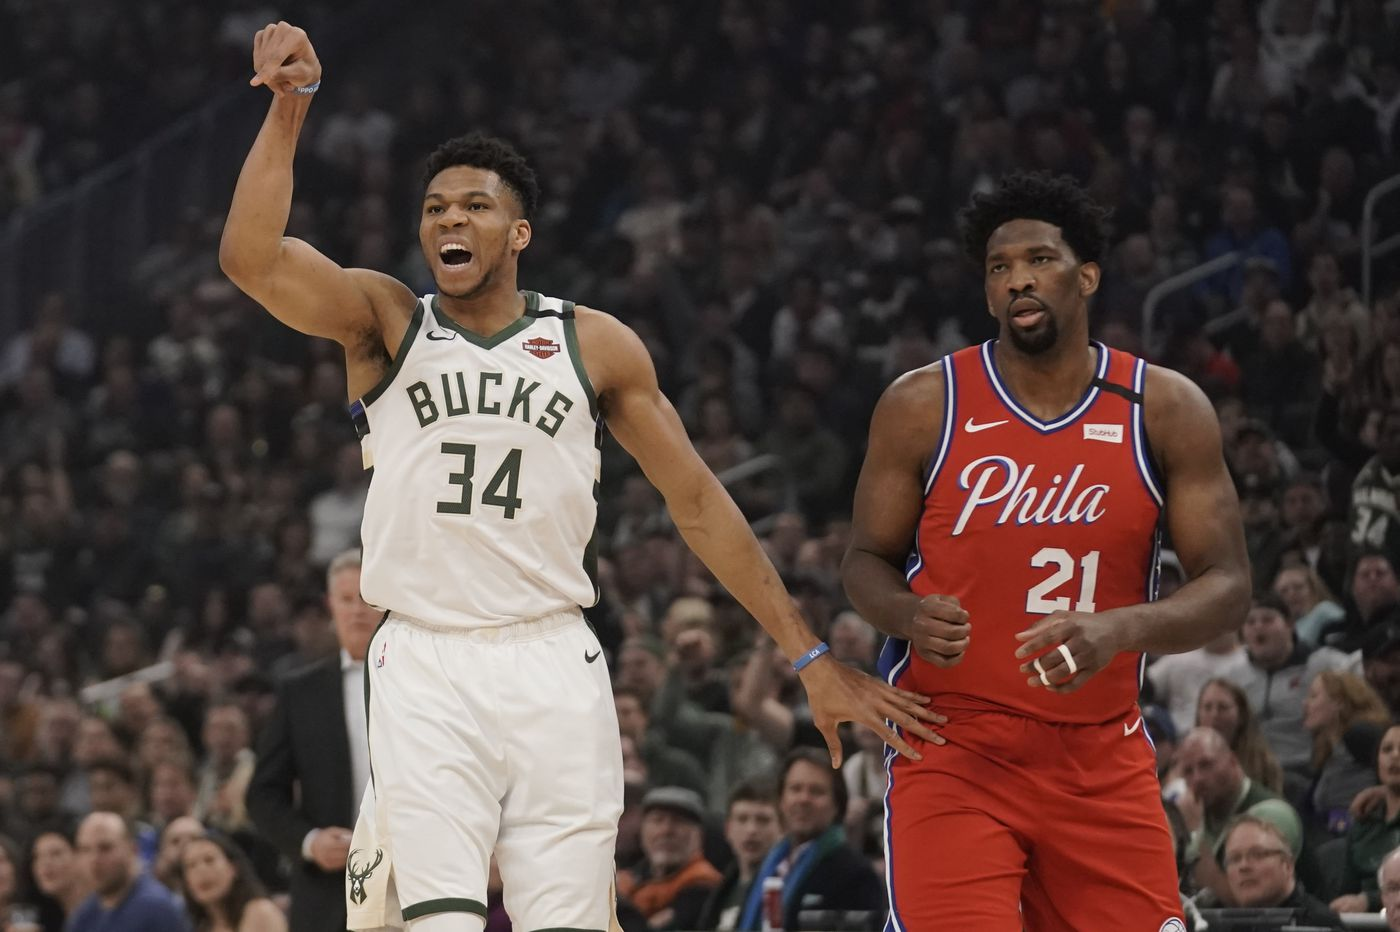 Is Sixers' Joel Embiid really the best player in the world? In the East? In Philadelphia? | Marcus Hayes